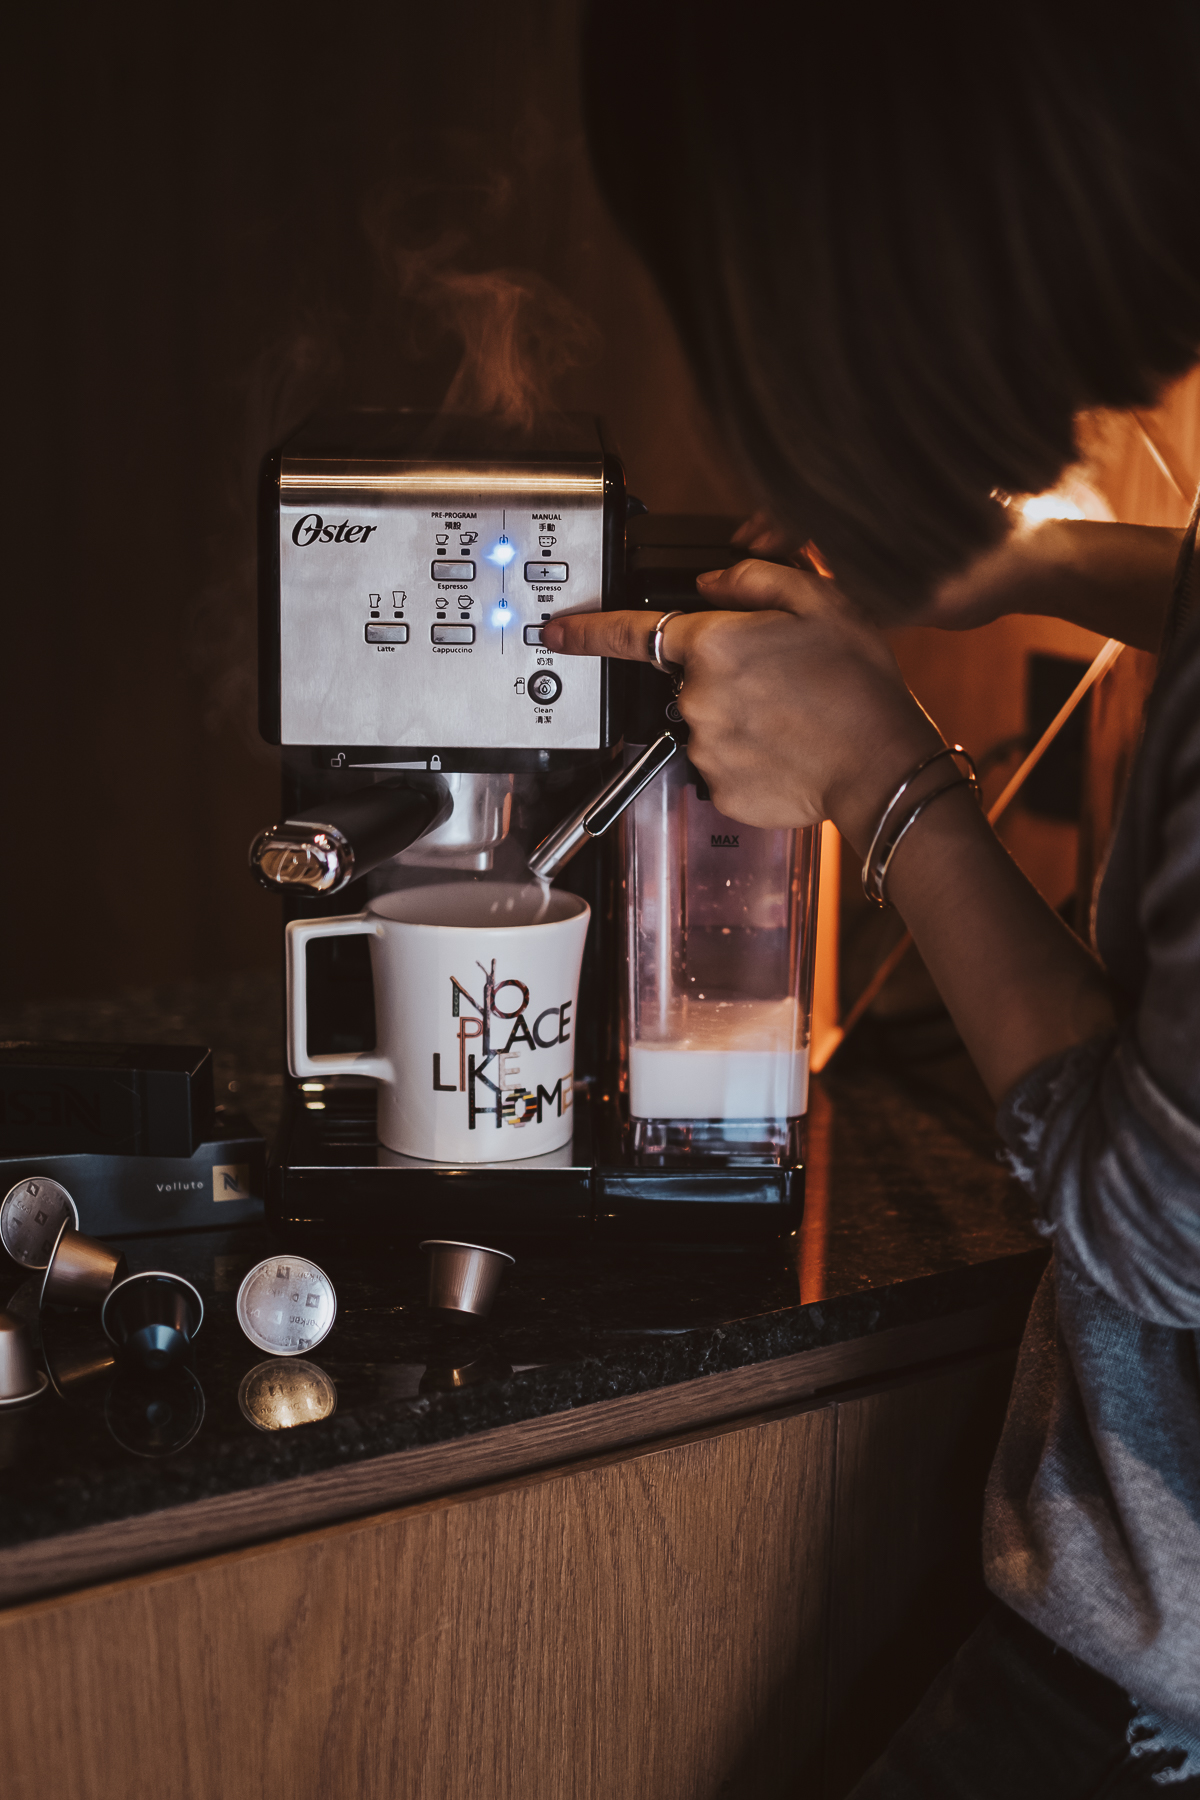 Oster Caffee Machine - HengStyle 恆隆行 - FUJIfilm X-T3 XF3514 - Yes! Please Enjoy-9.jpg